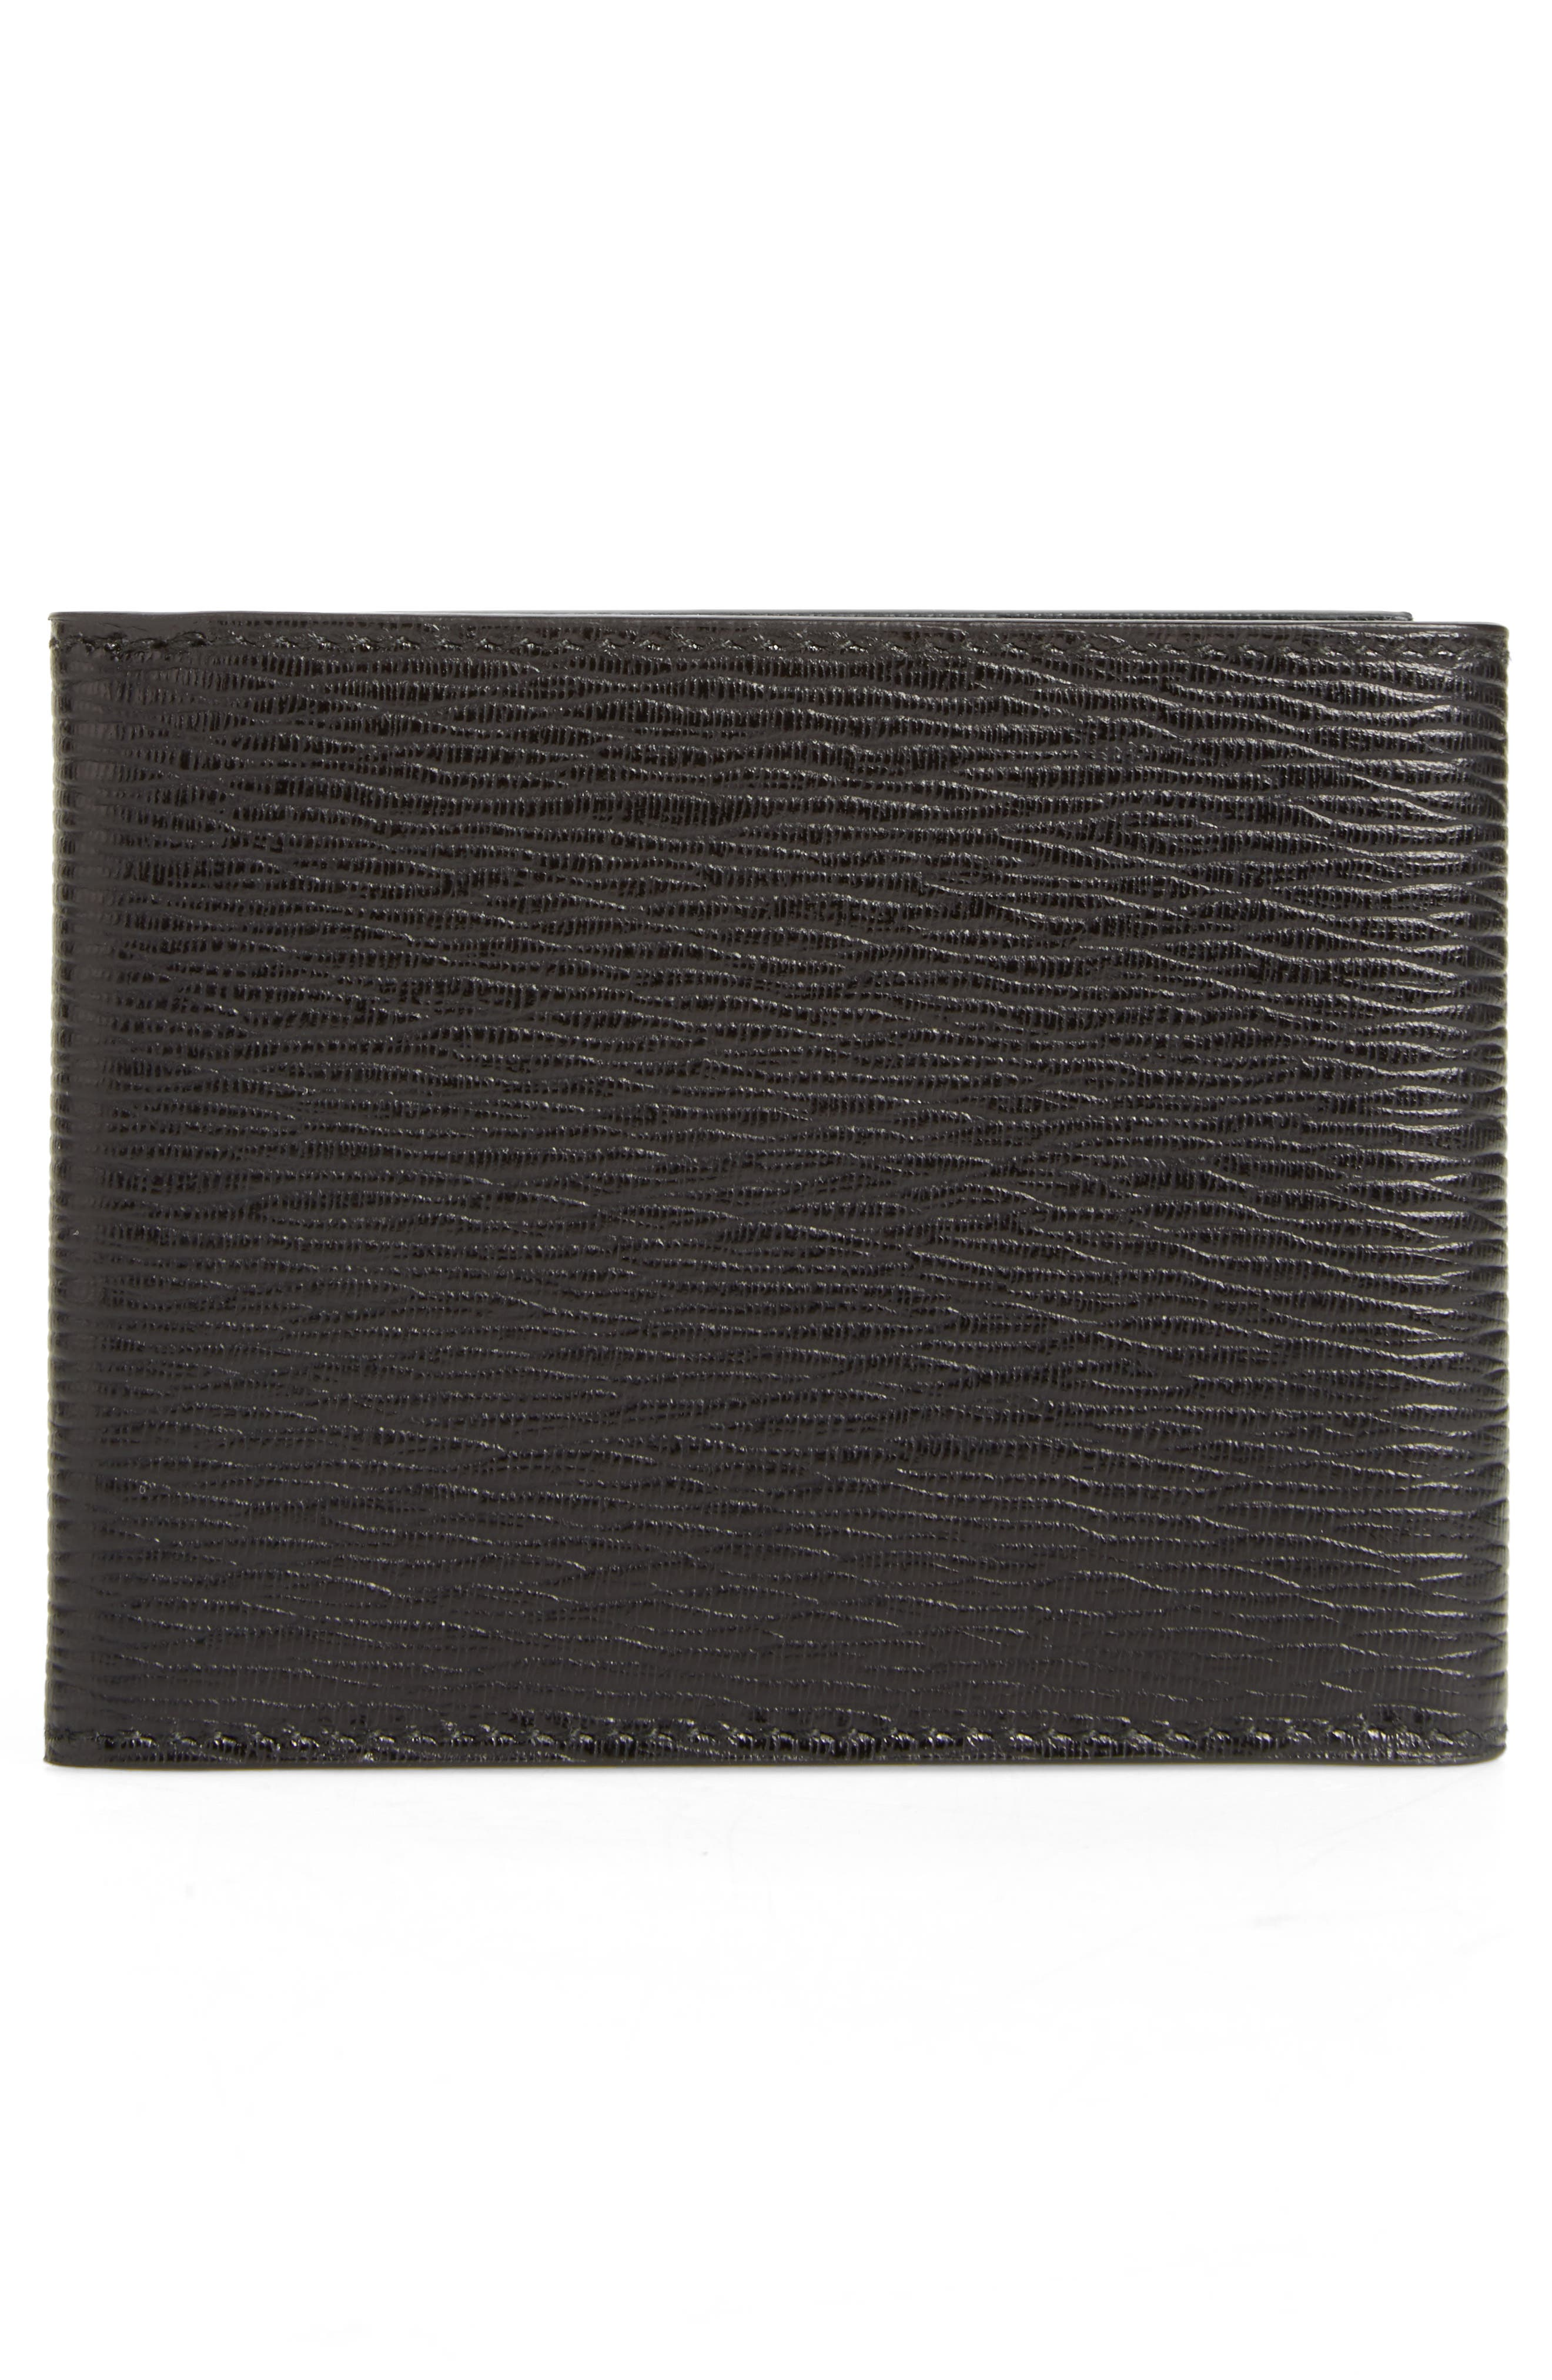 Revival Leather Wallet,                             Alternate thumbnail 3, color,                             001